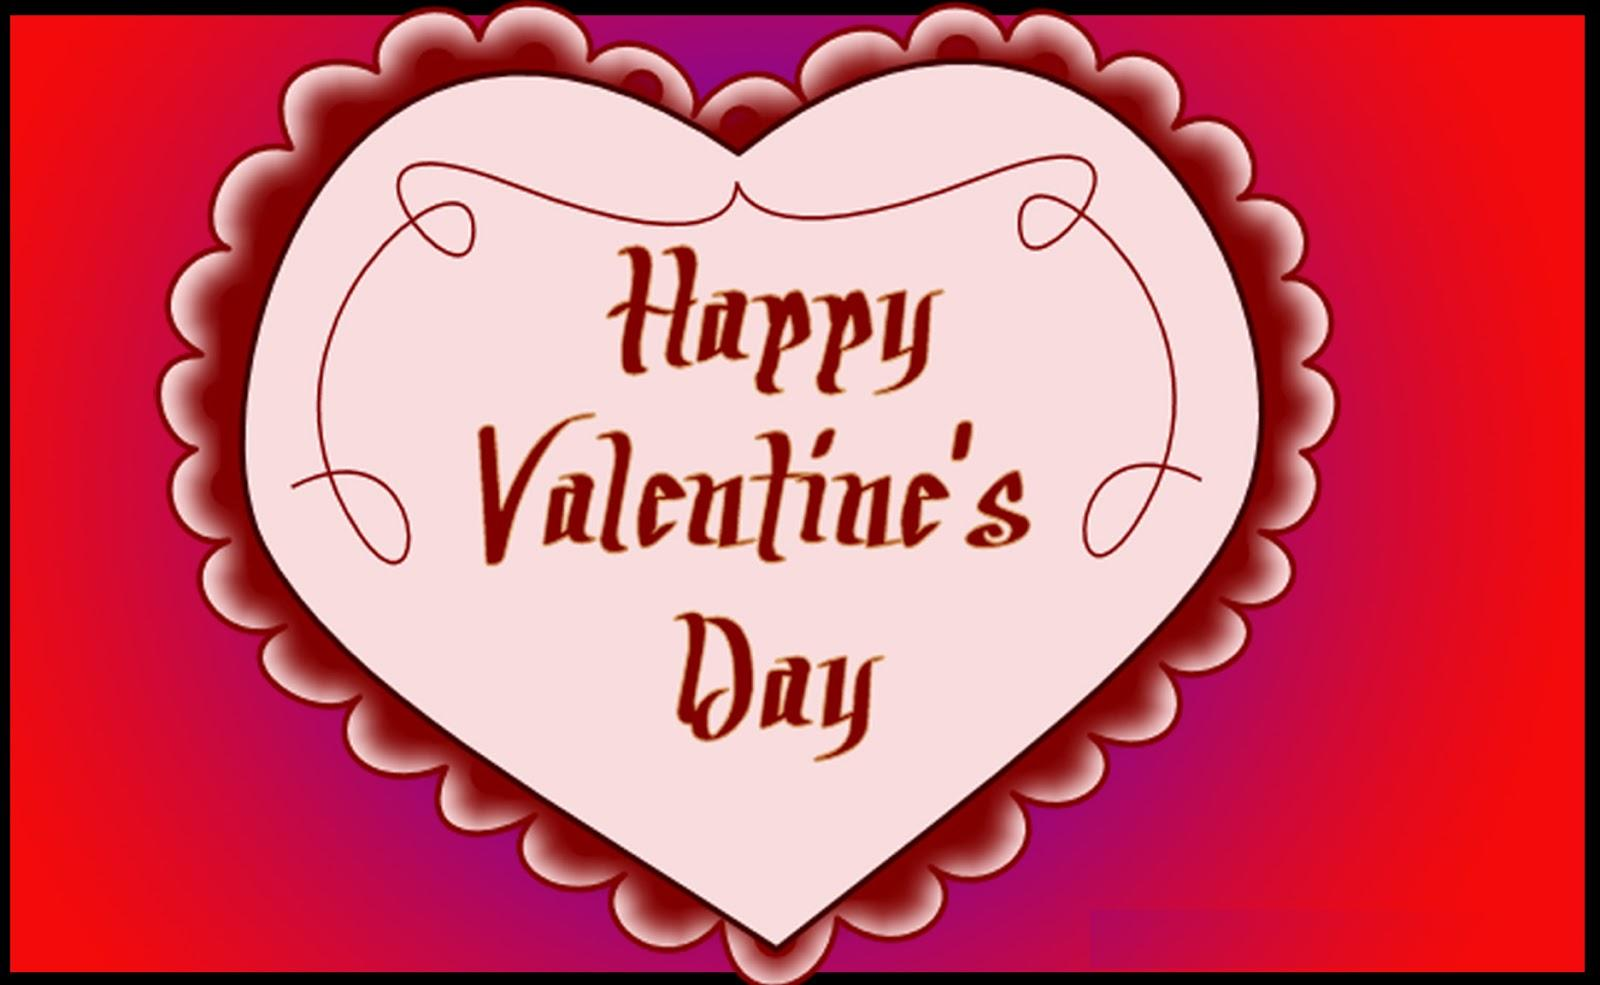 Valentines Day Wallpapers Free Download